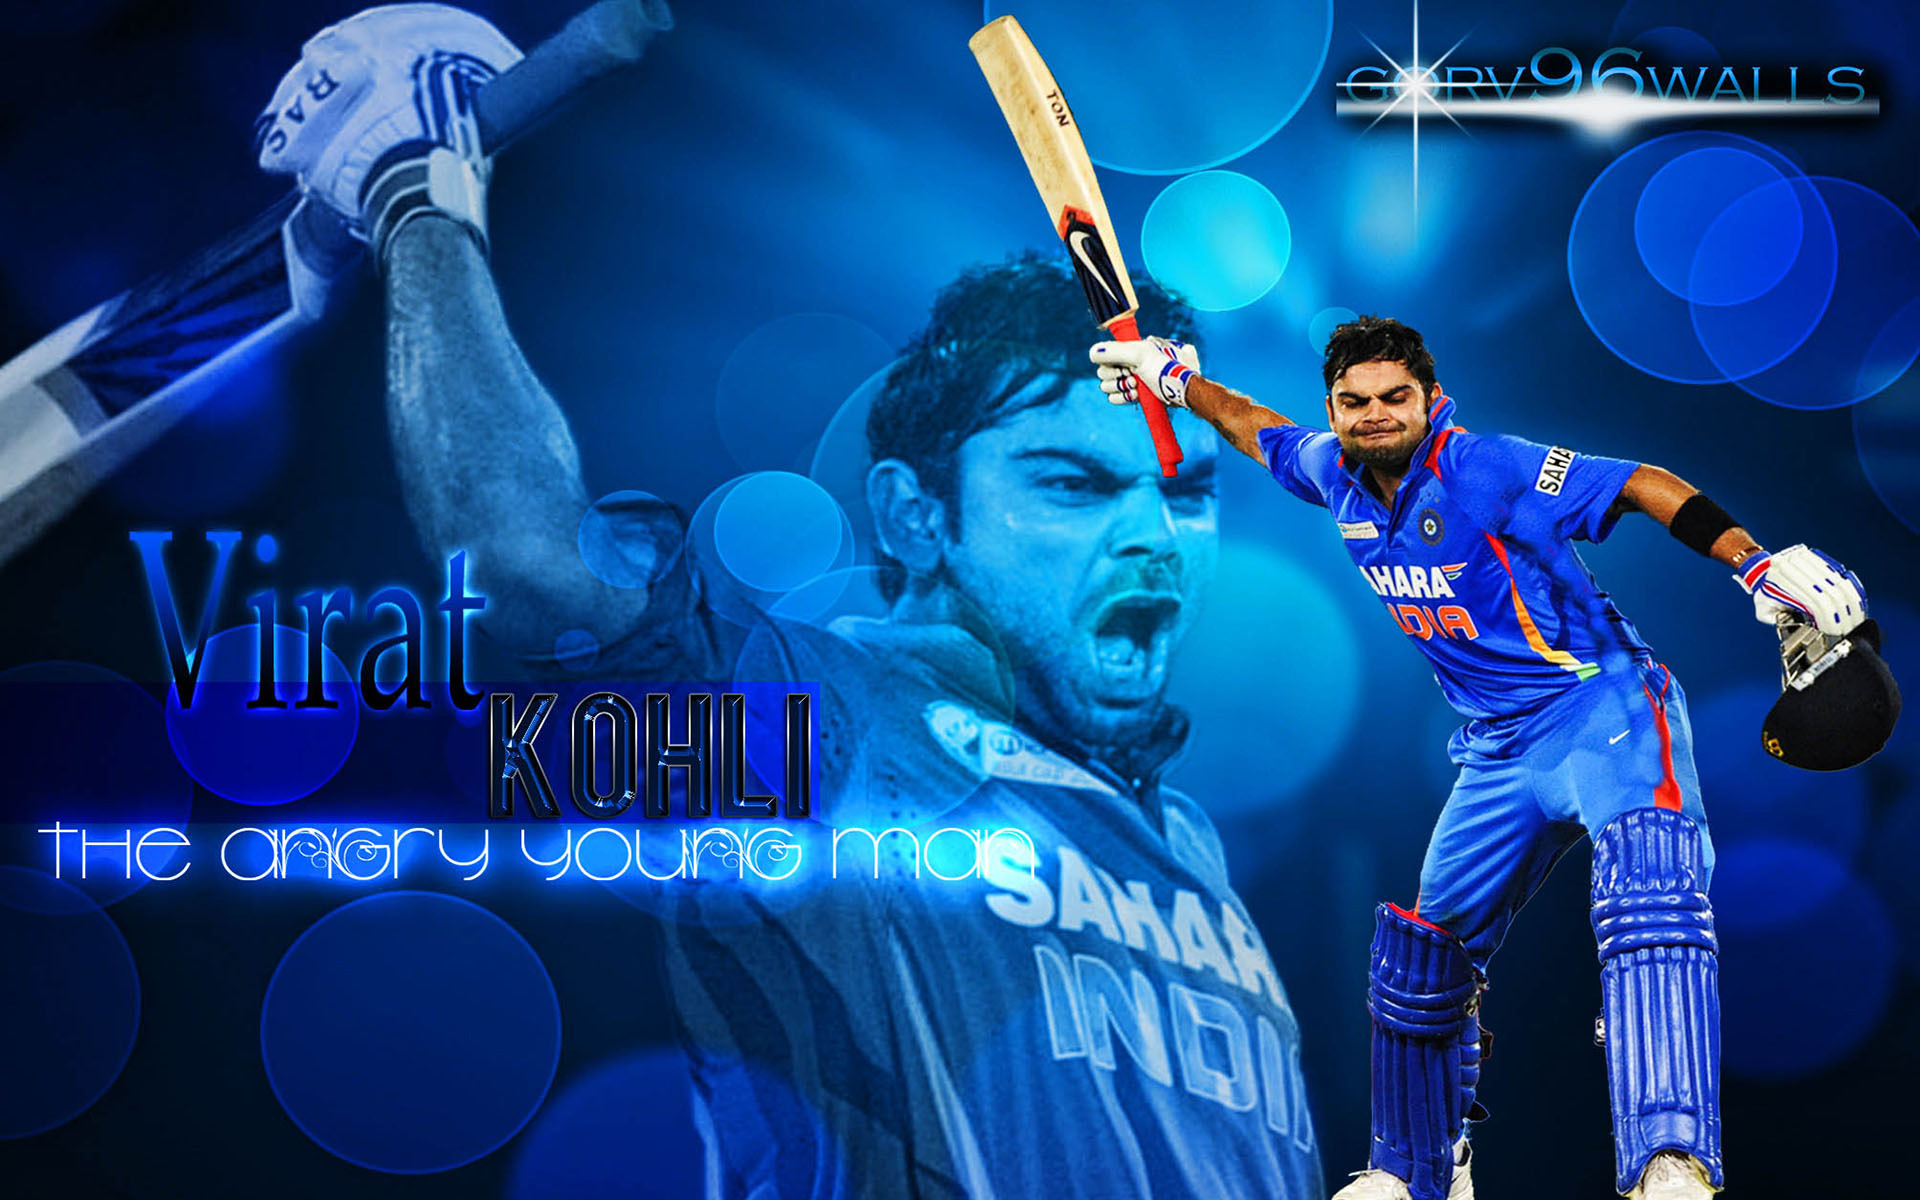 Virat Kohli Hd Wallpaper Hd Latest Wallpapers